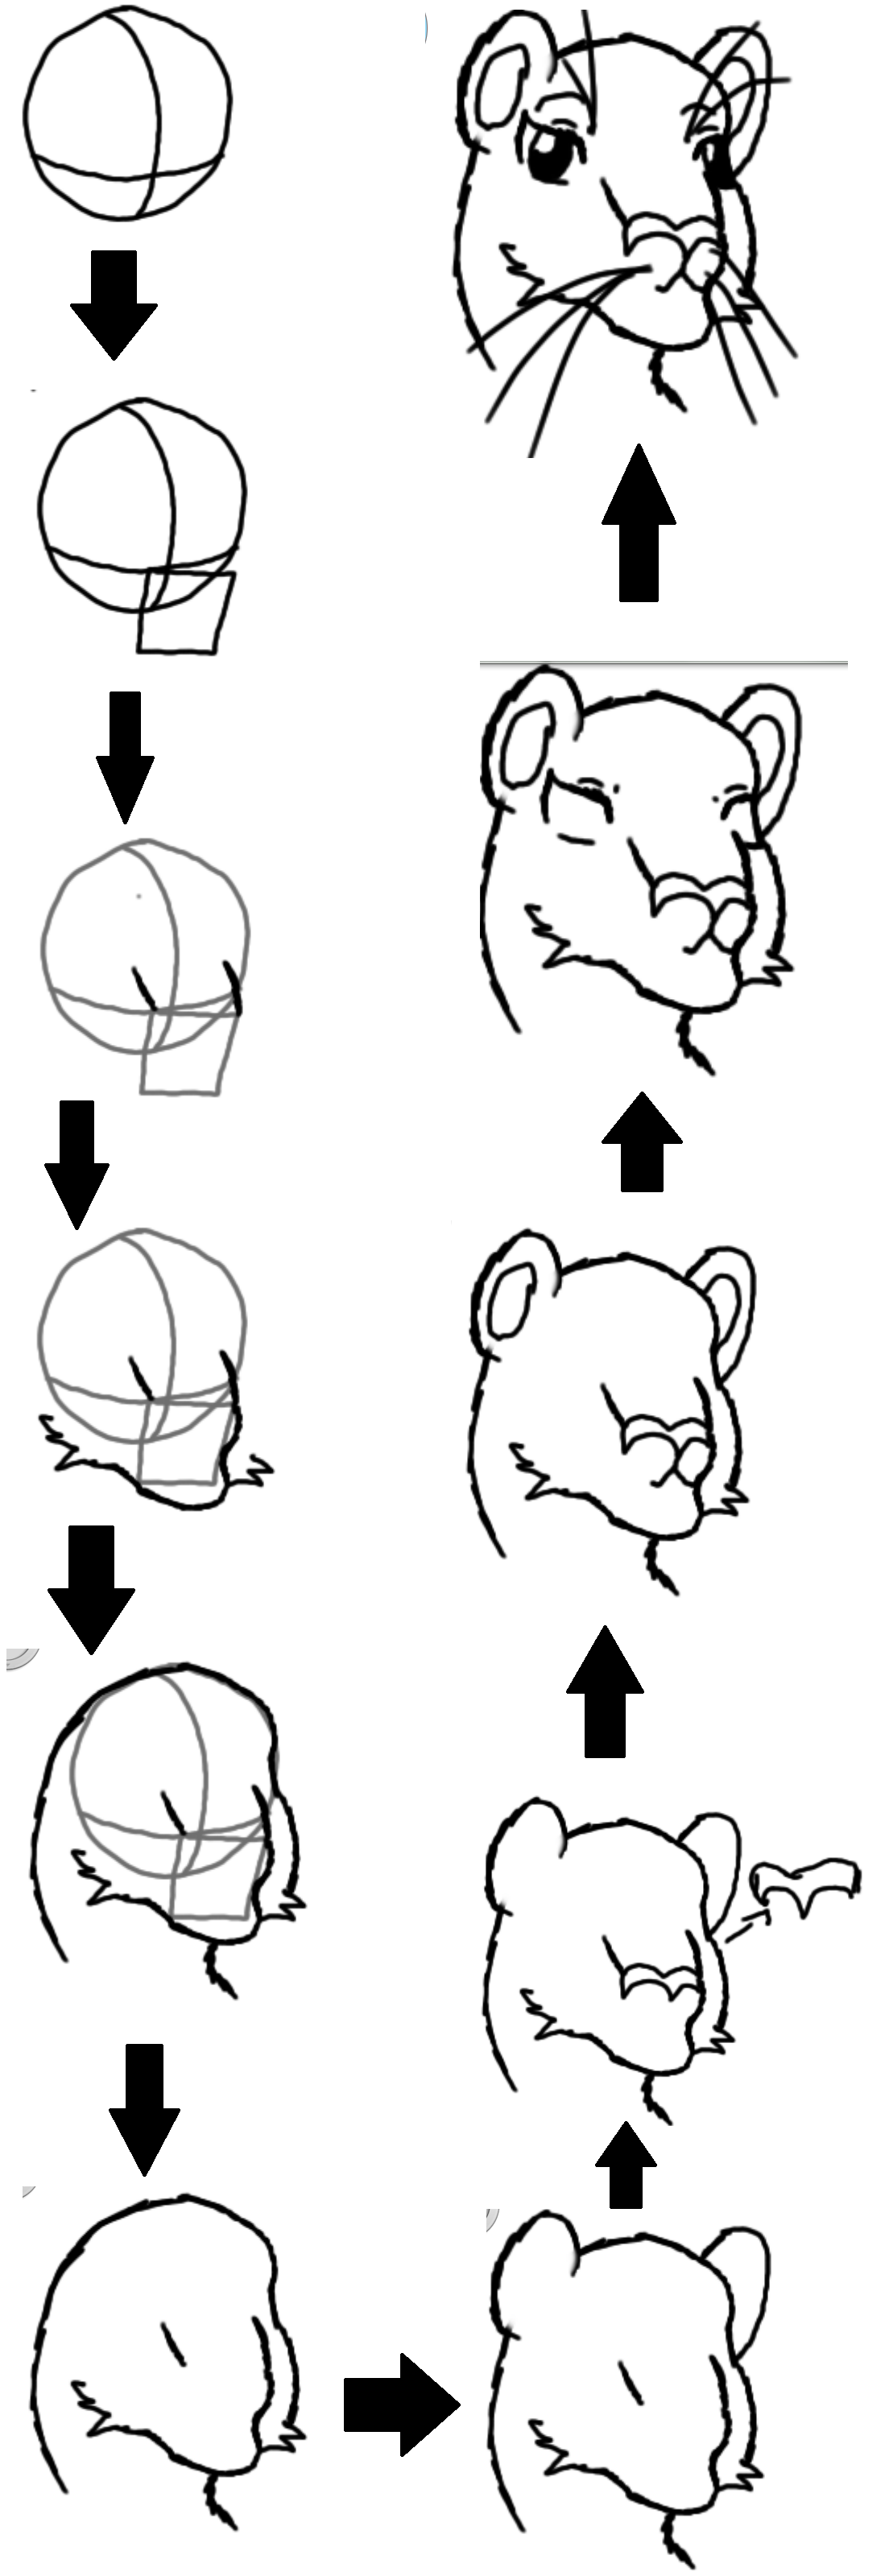 Uncategorized How To Draw A Lion Head Step By Step how to draw a lion head by theanimecat10 on deviantart theanimecat10